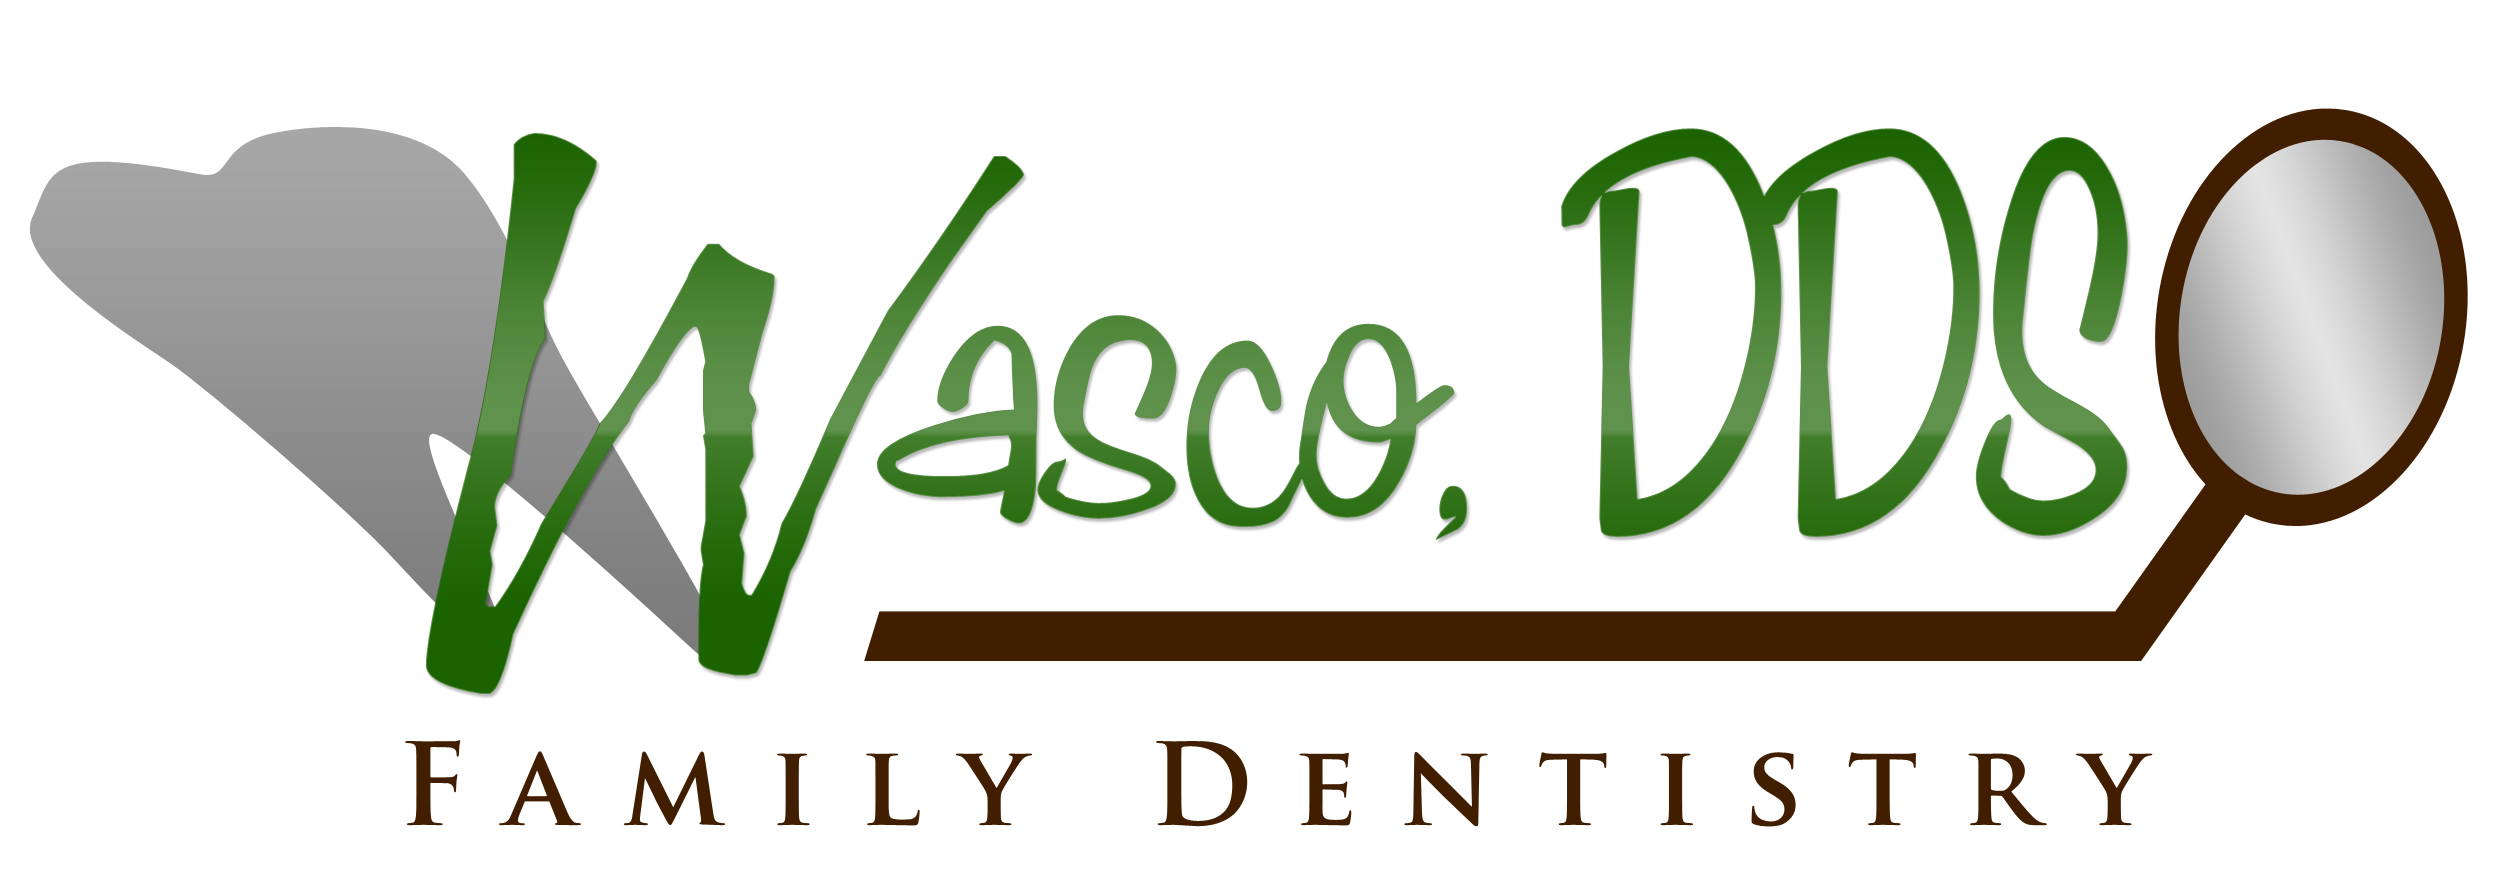 Wasco, DDS Family Dentistry Canal Fulton, OH 44614